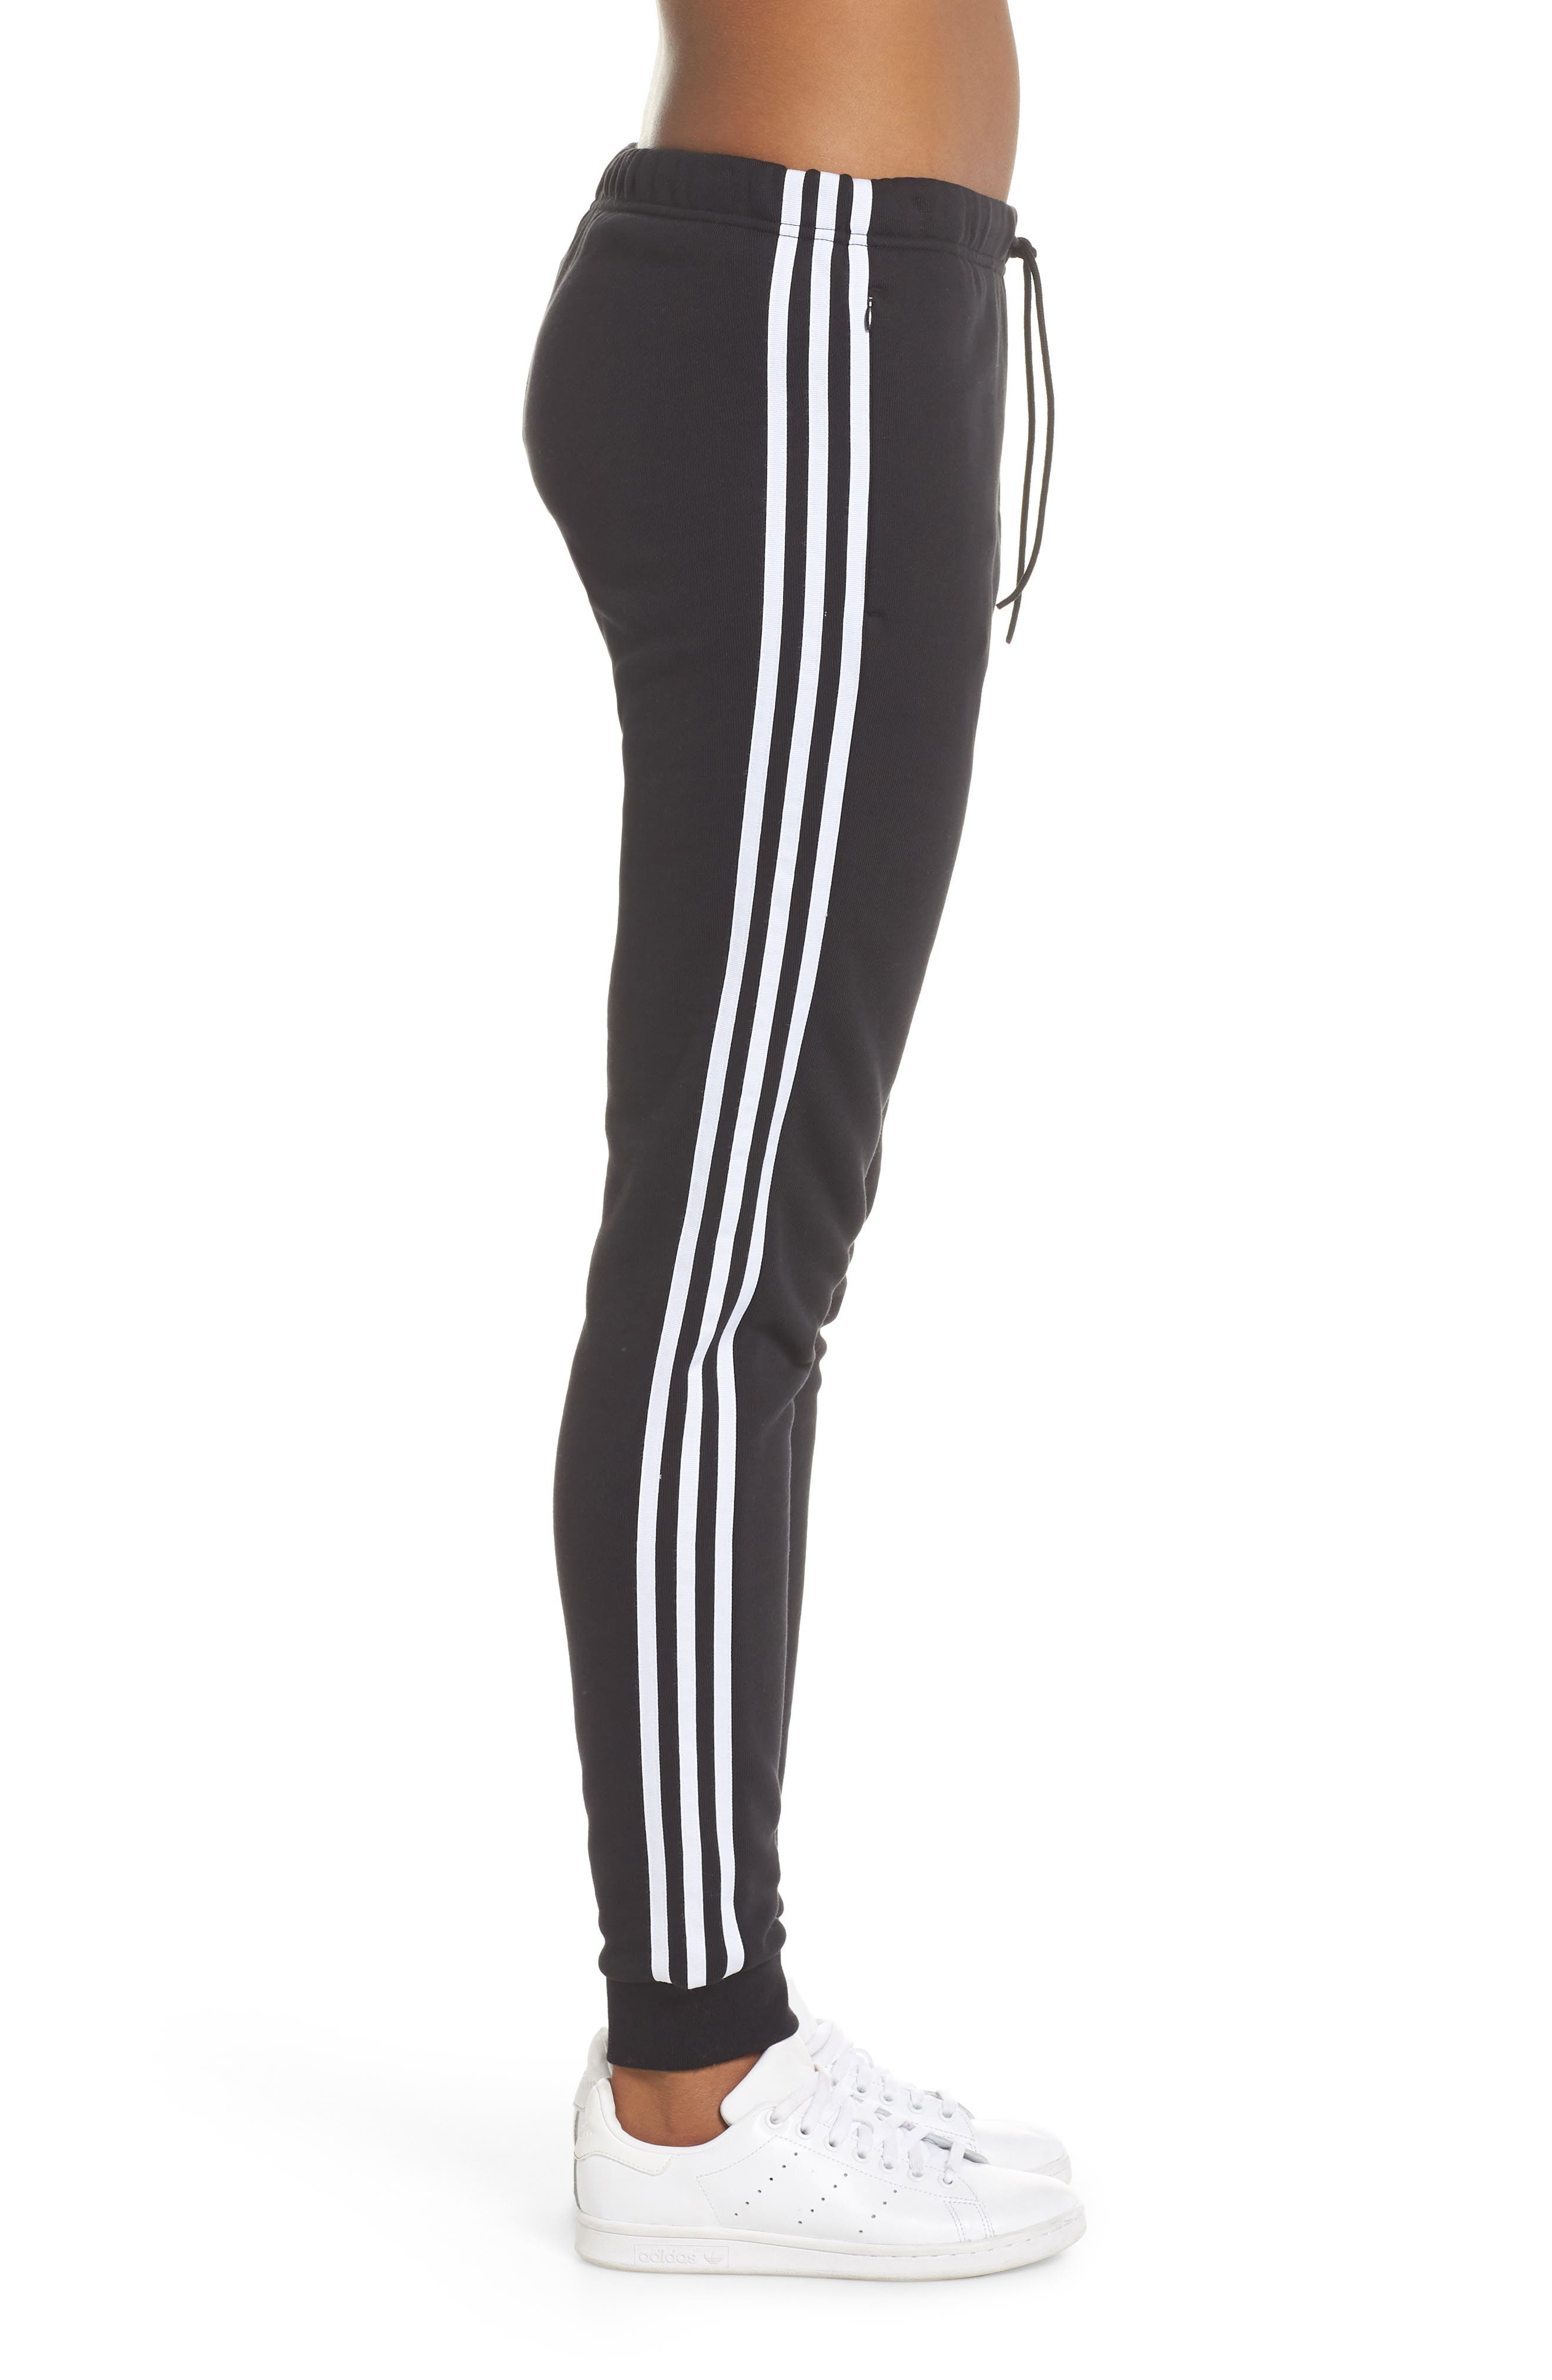 ADIDAS ORIGINALS, Cuffed Track Pants, Alternate thumbnail 4, color, BLACK